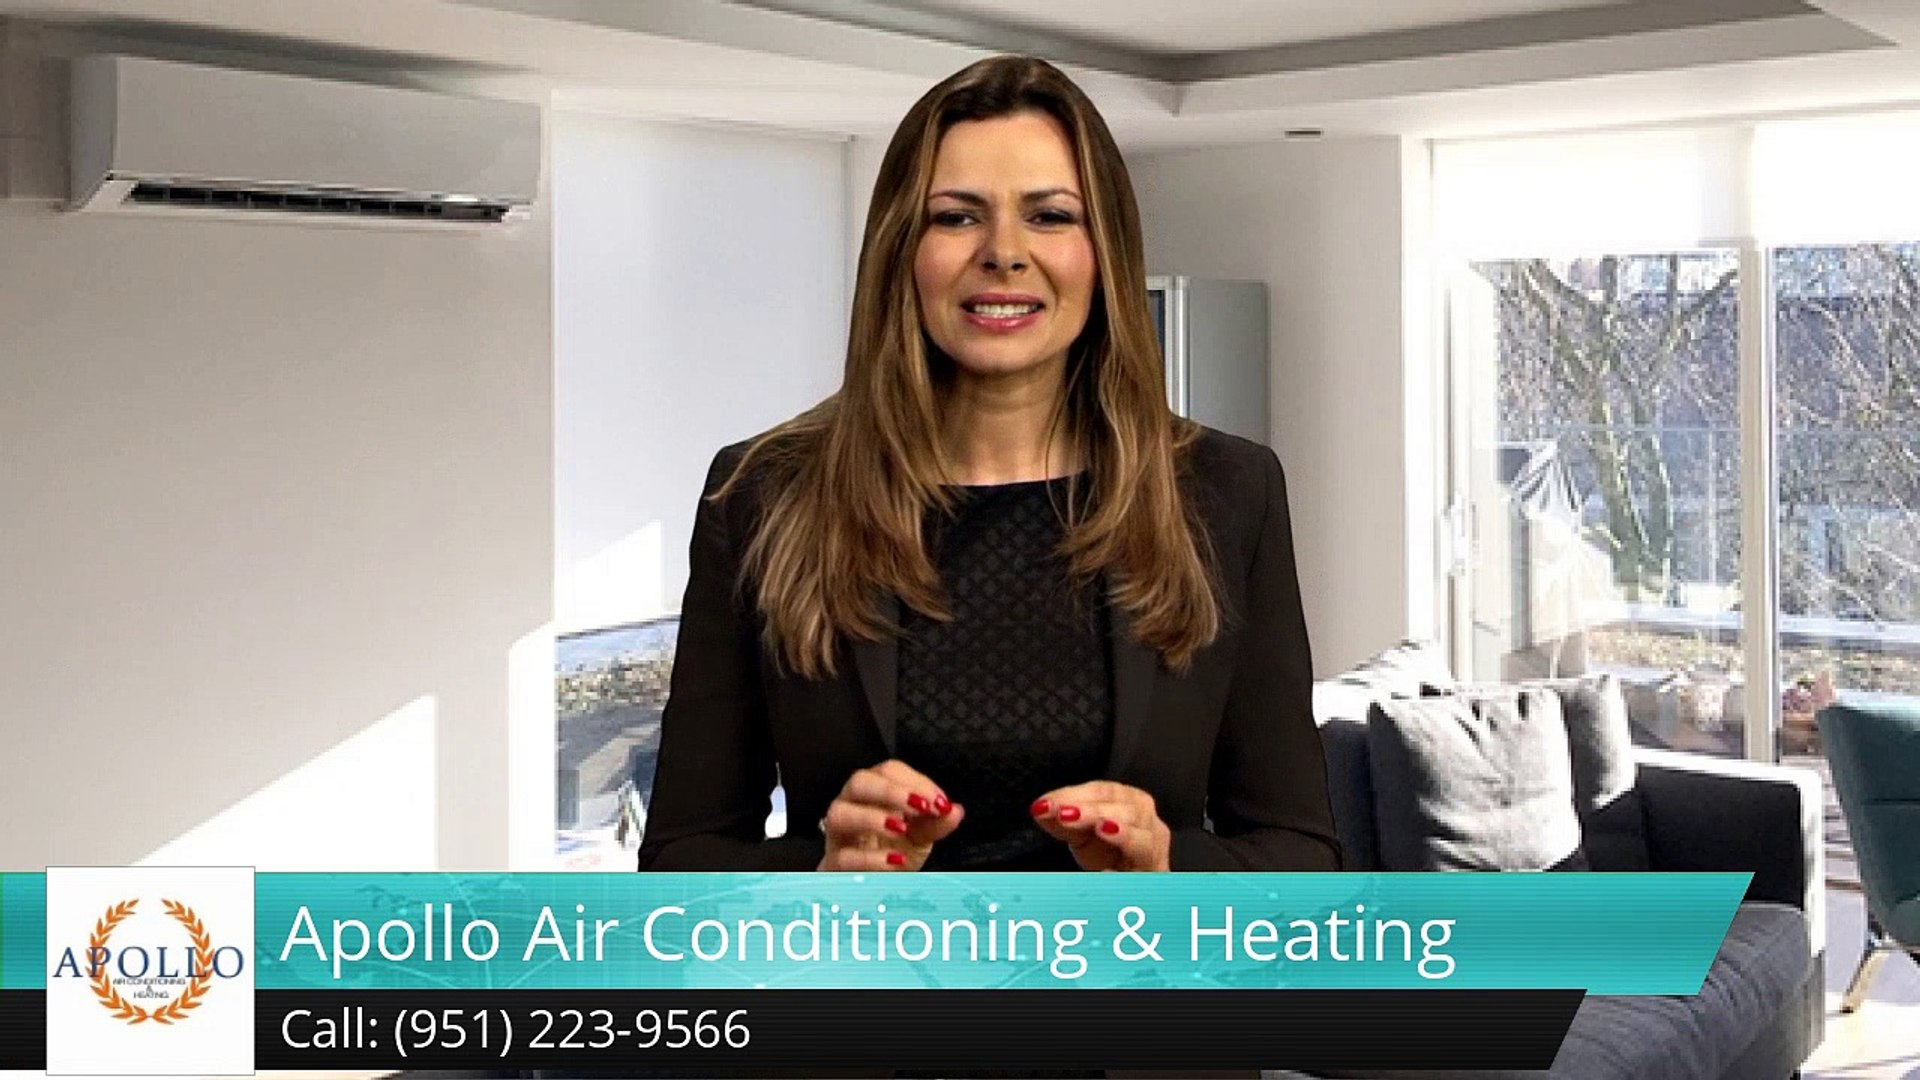 Corona Best Heating Repair – Apollo Air Conditioning & Heating - Corona Outstanding Five Star...